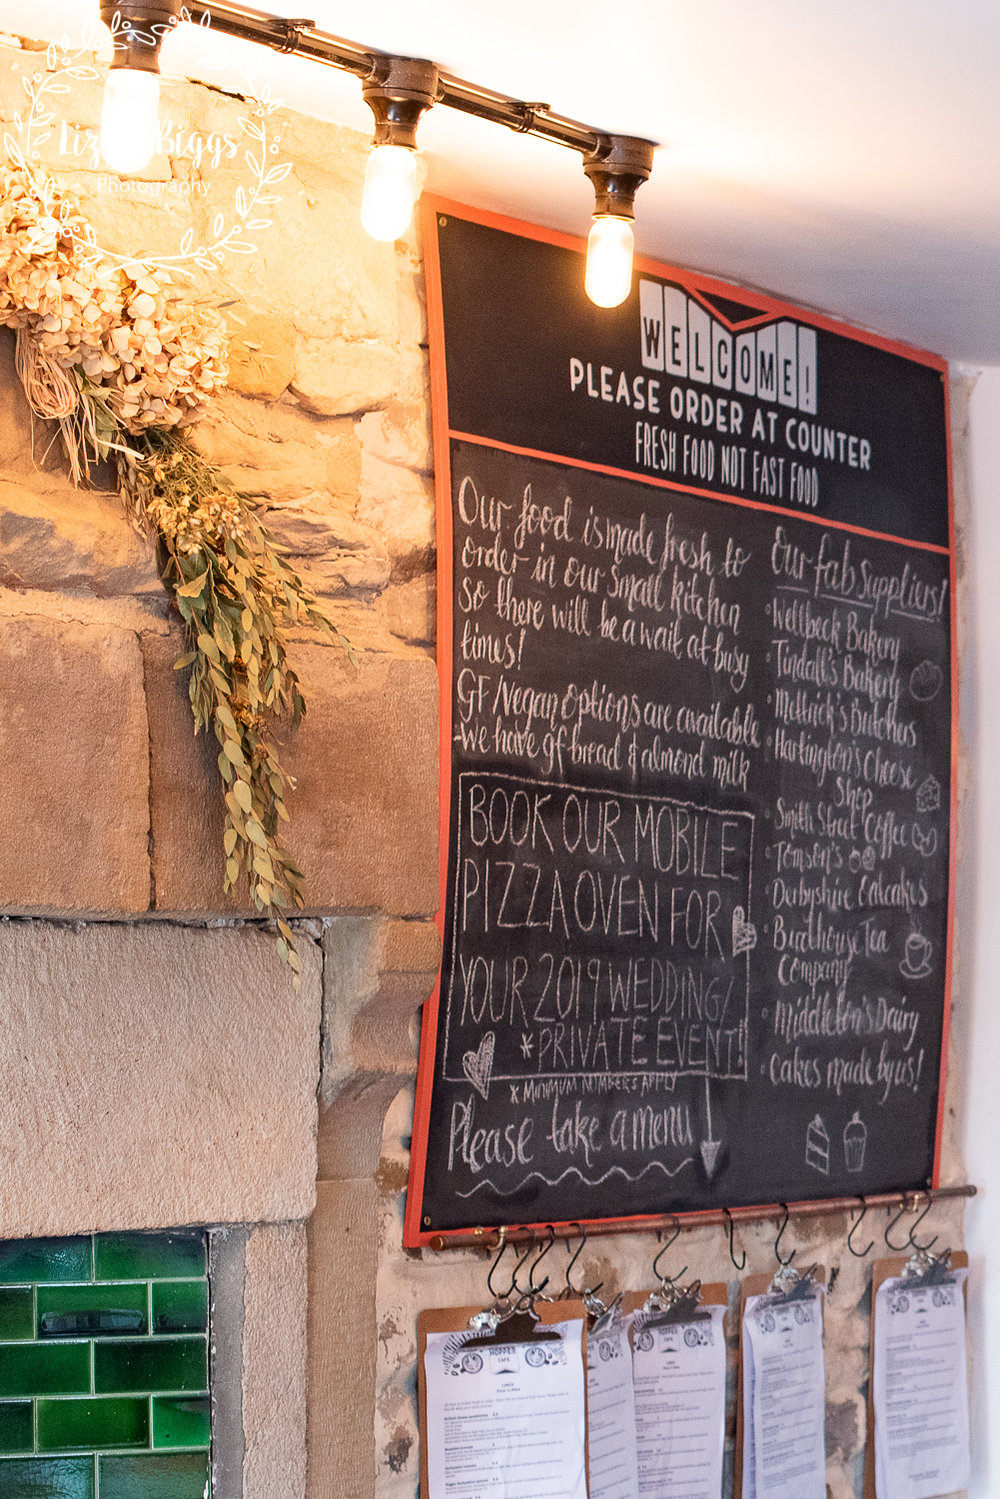 Lizzy_Biggs_Photography_Cafe_info_board